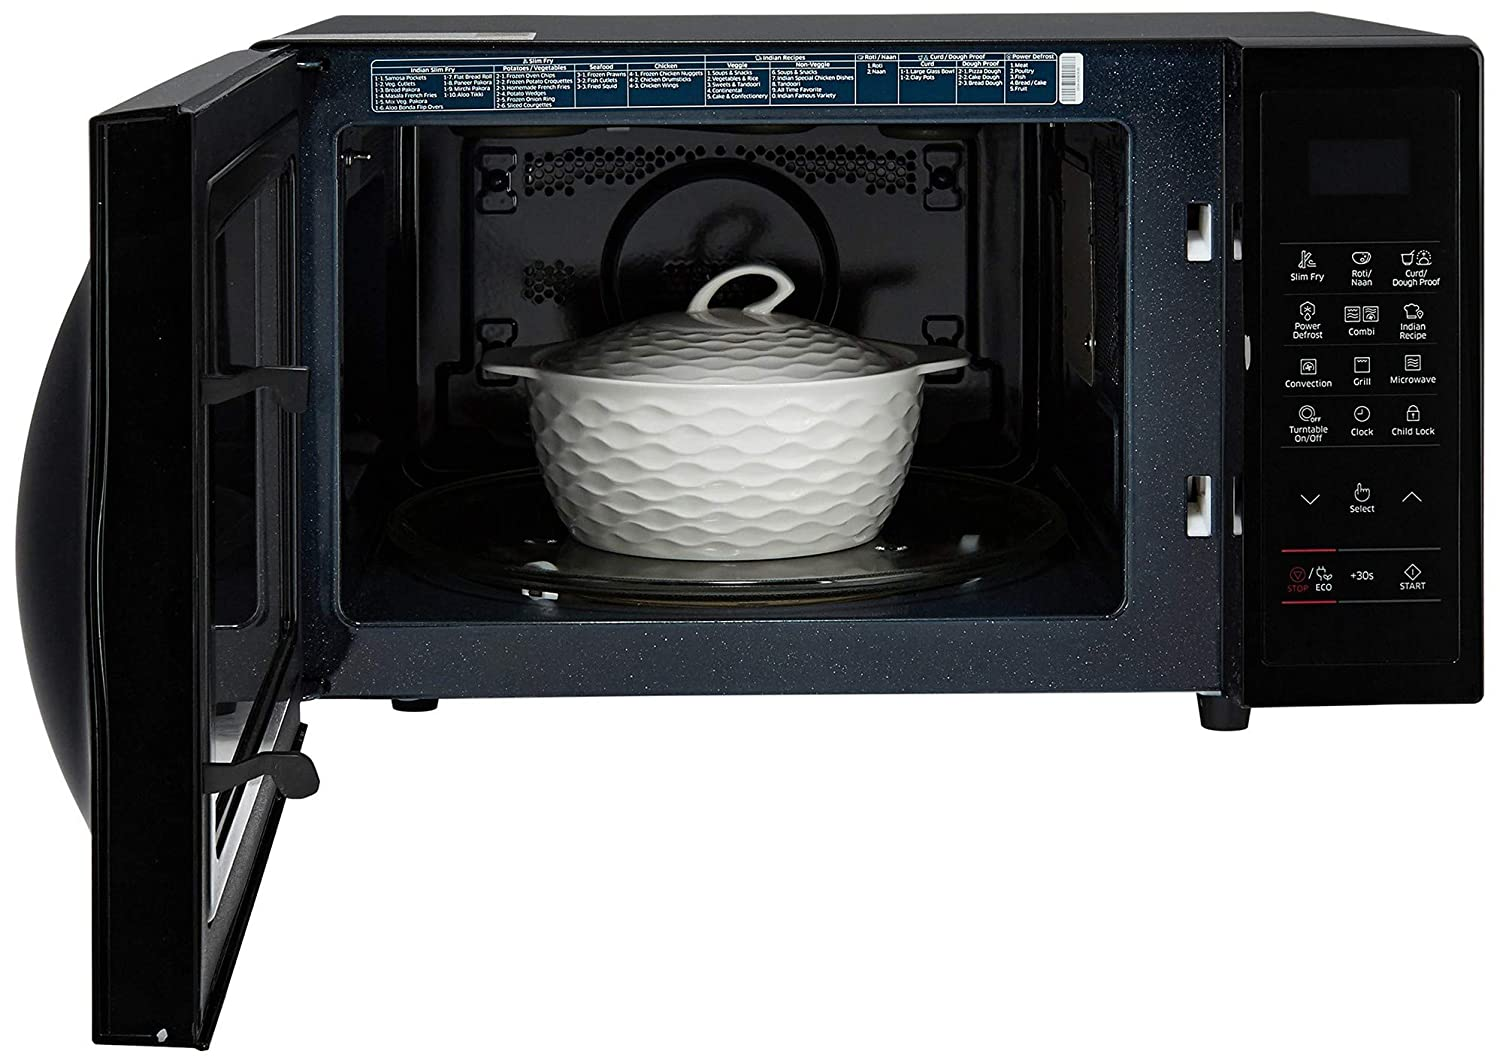 Samsung Microwave Oven - Best Microwave Oven Brand